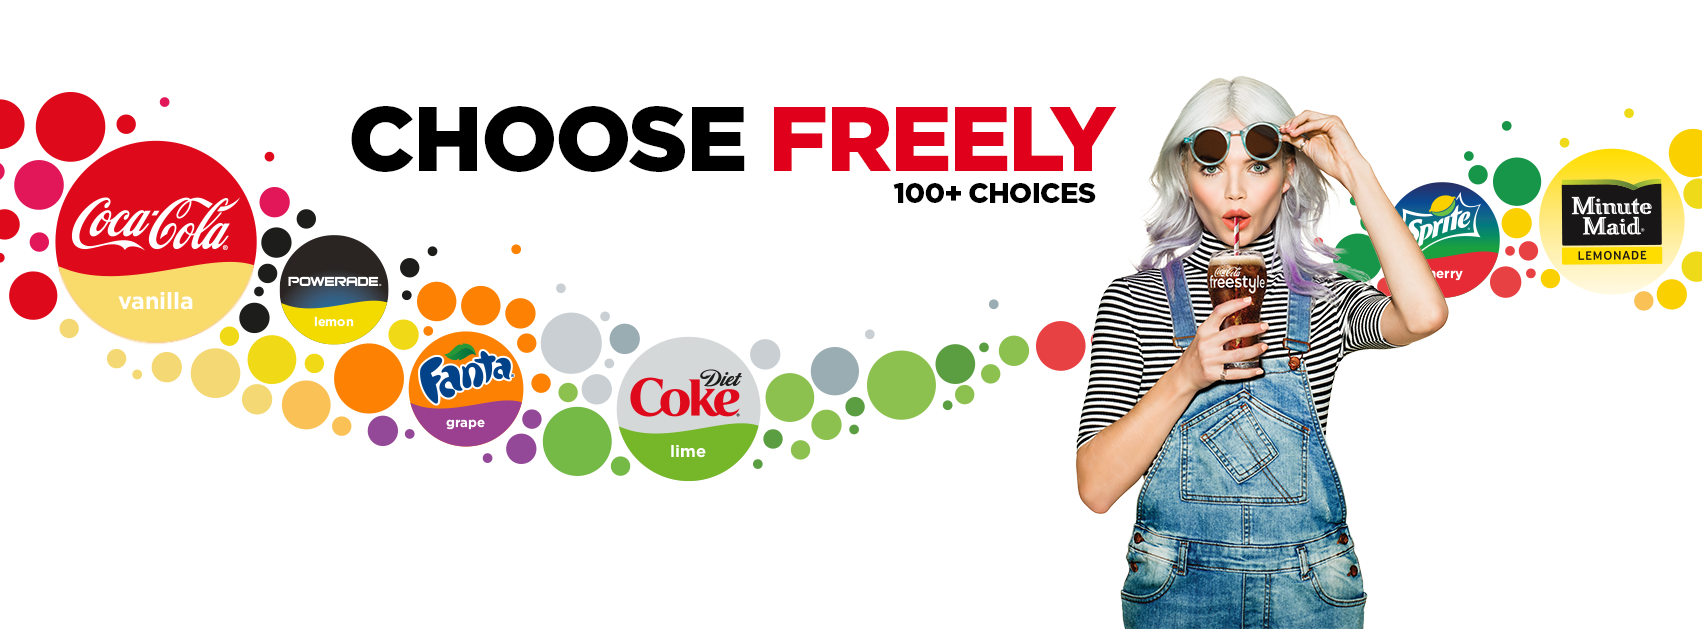 coca-cola freestyle-2